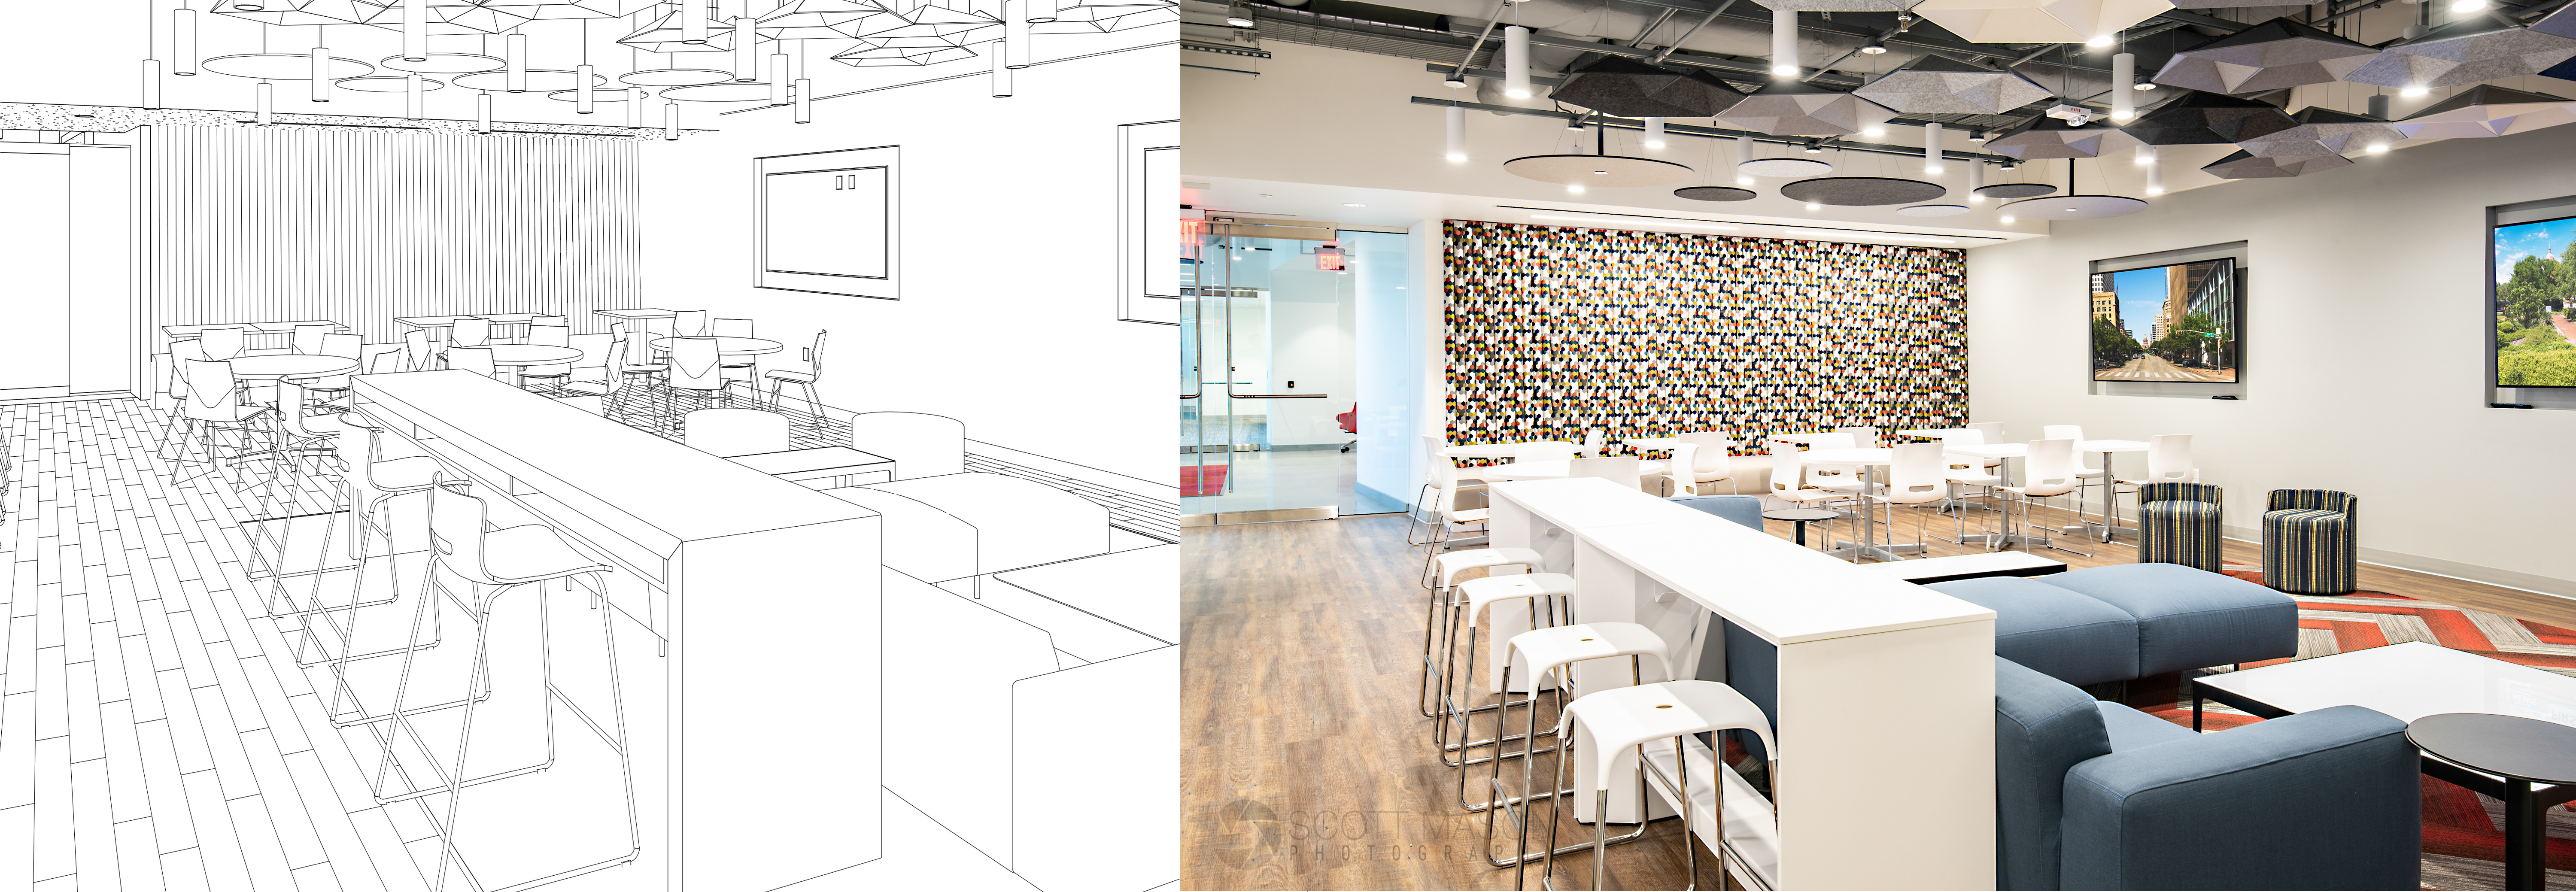 side-by-side of an architectural rendering and interior photo of an office's break room